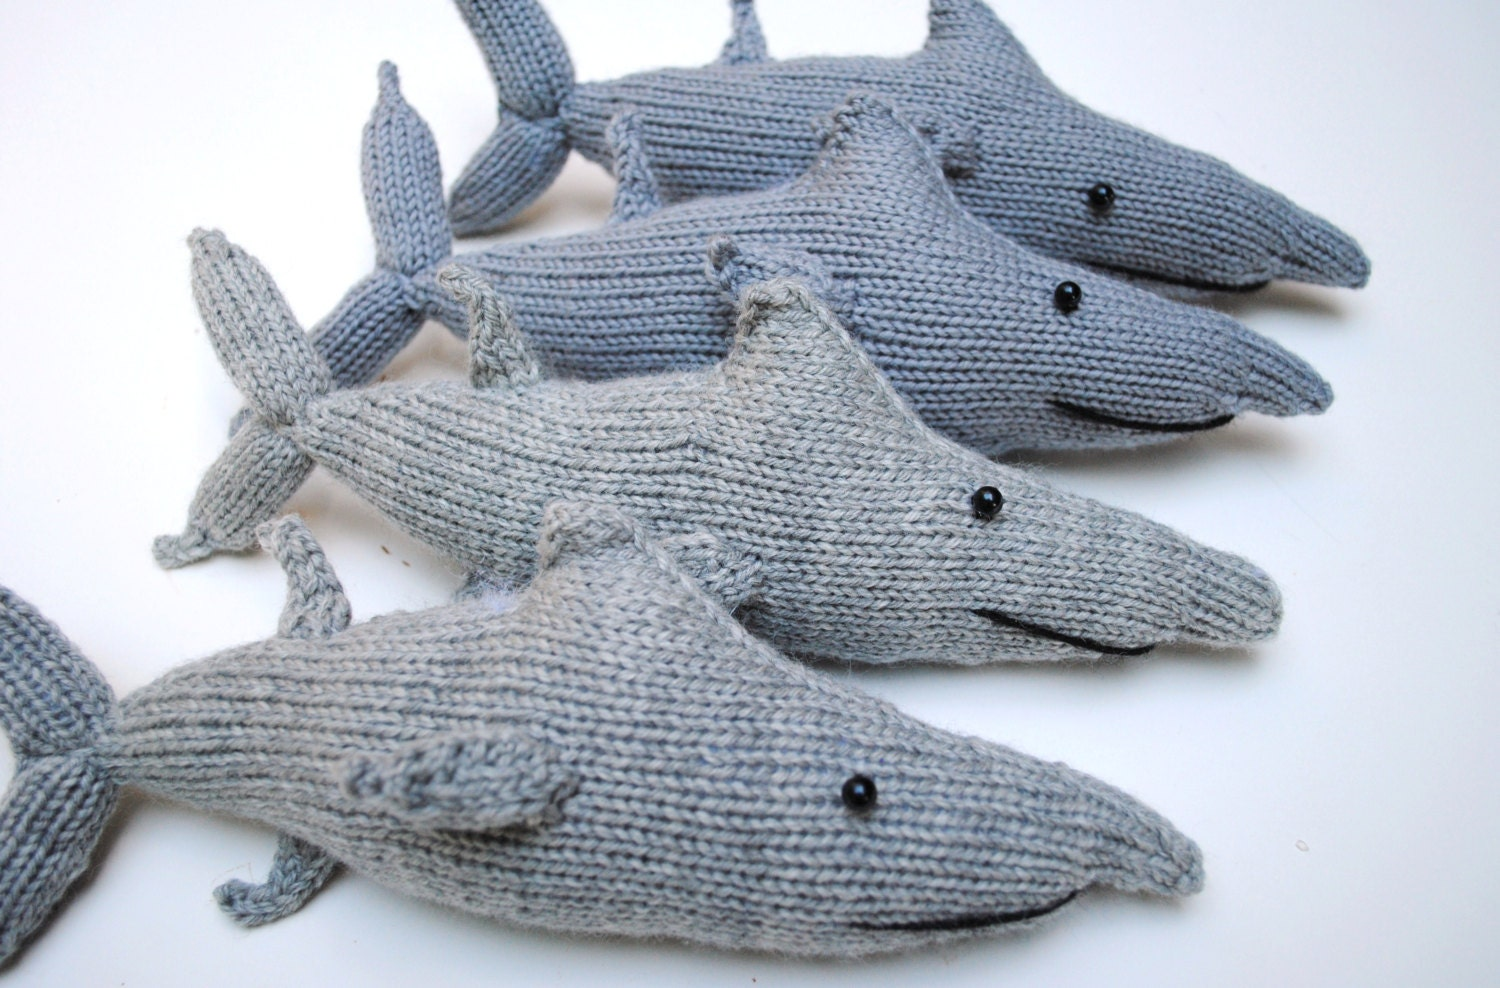 Popular items for shark toy on Etsy